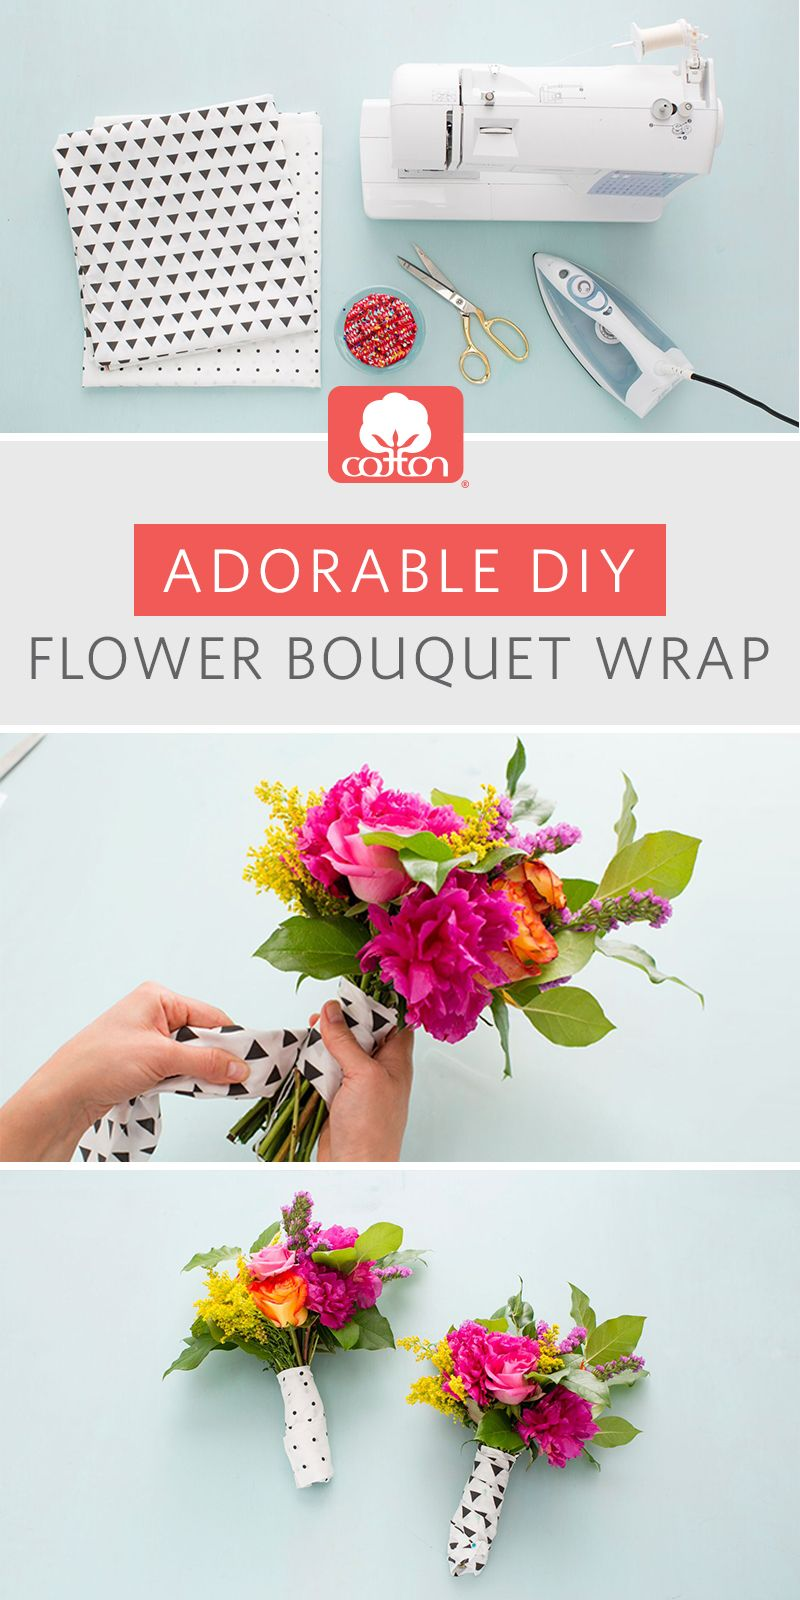 Diy bouquet wrap gal pal diy flower and flower bouquets say i do to this super easy and adorable diy flower bouquet wrap follow along for the how to from us and britandco and have some fun with your gal izmirmasajfo